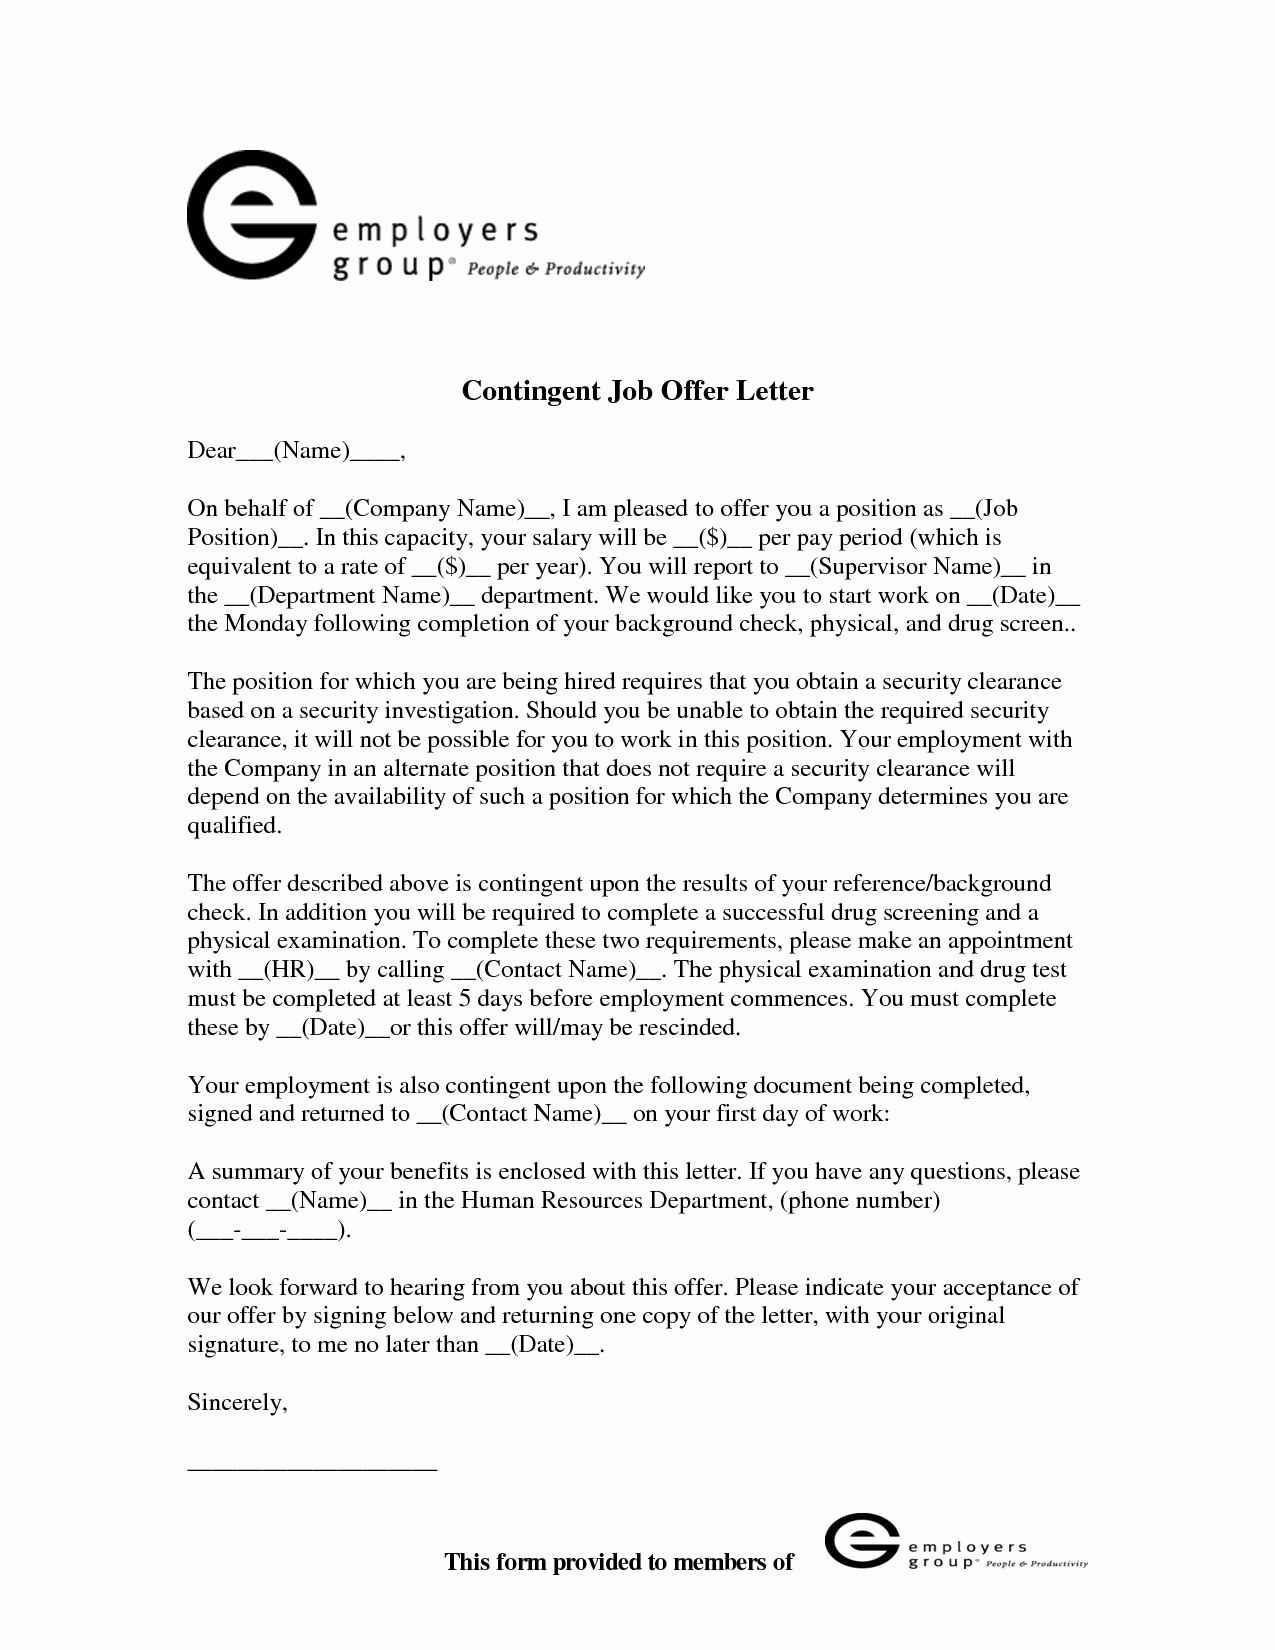 contingent offer letter template Collection-Conditional fer Employment Letter Template Free Creative Letter Intent Job fer Employment Sample Great Fer For 8-g